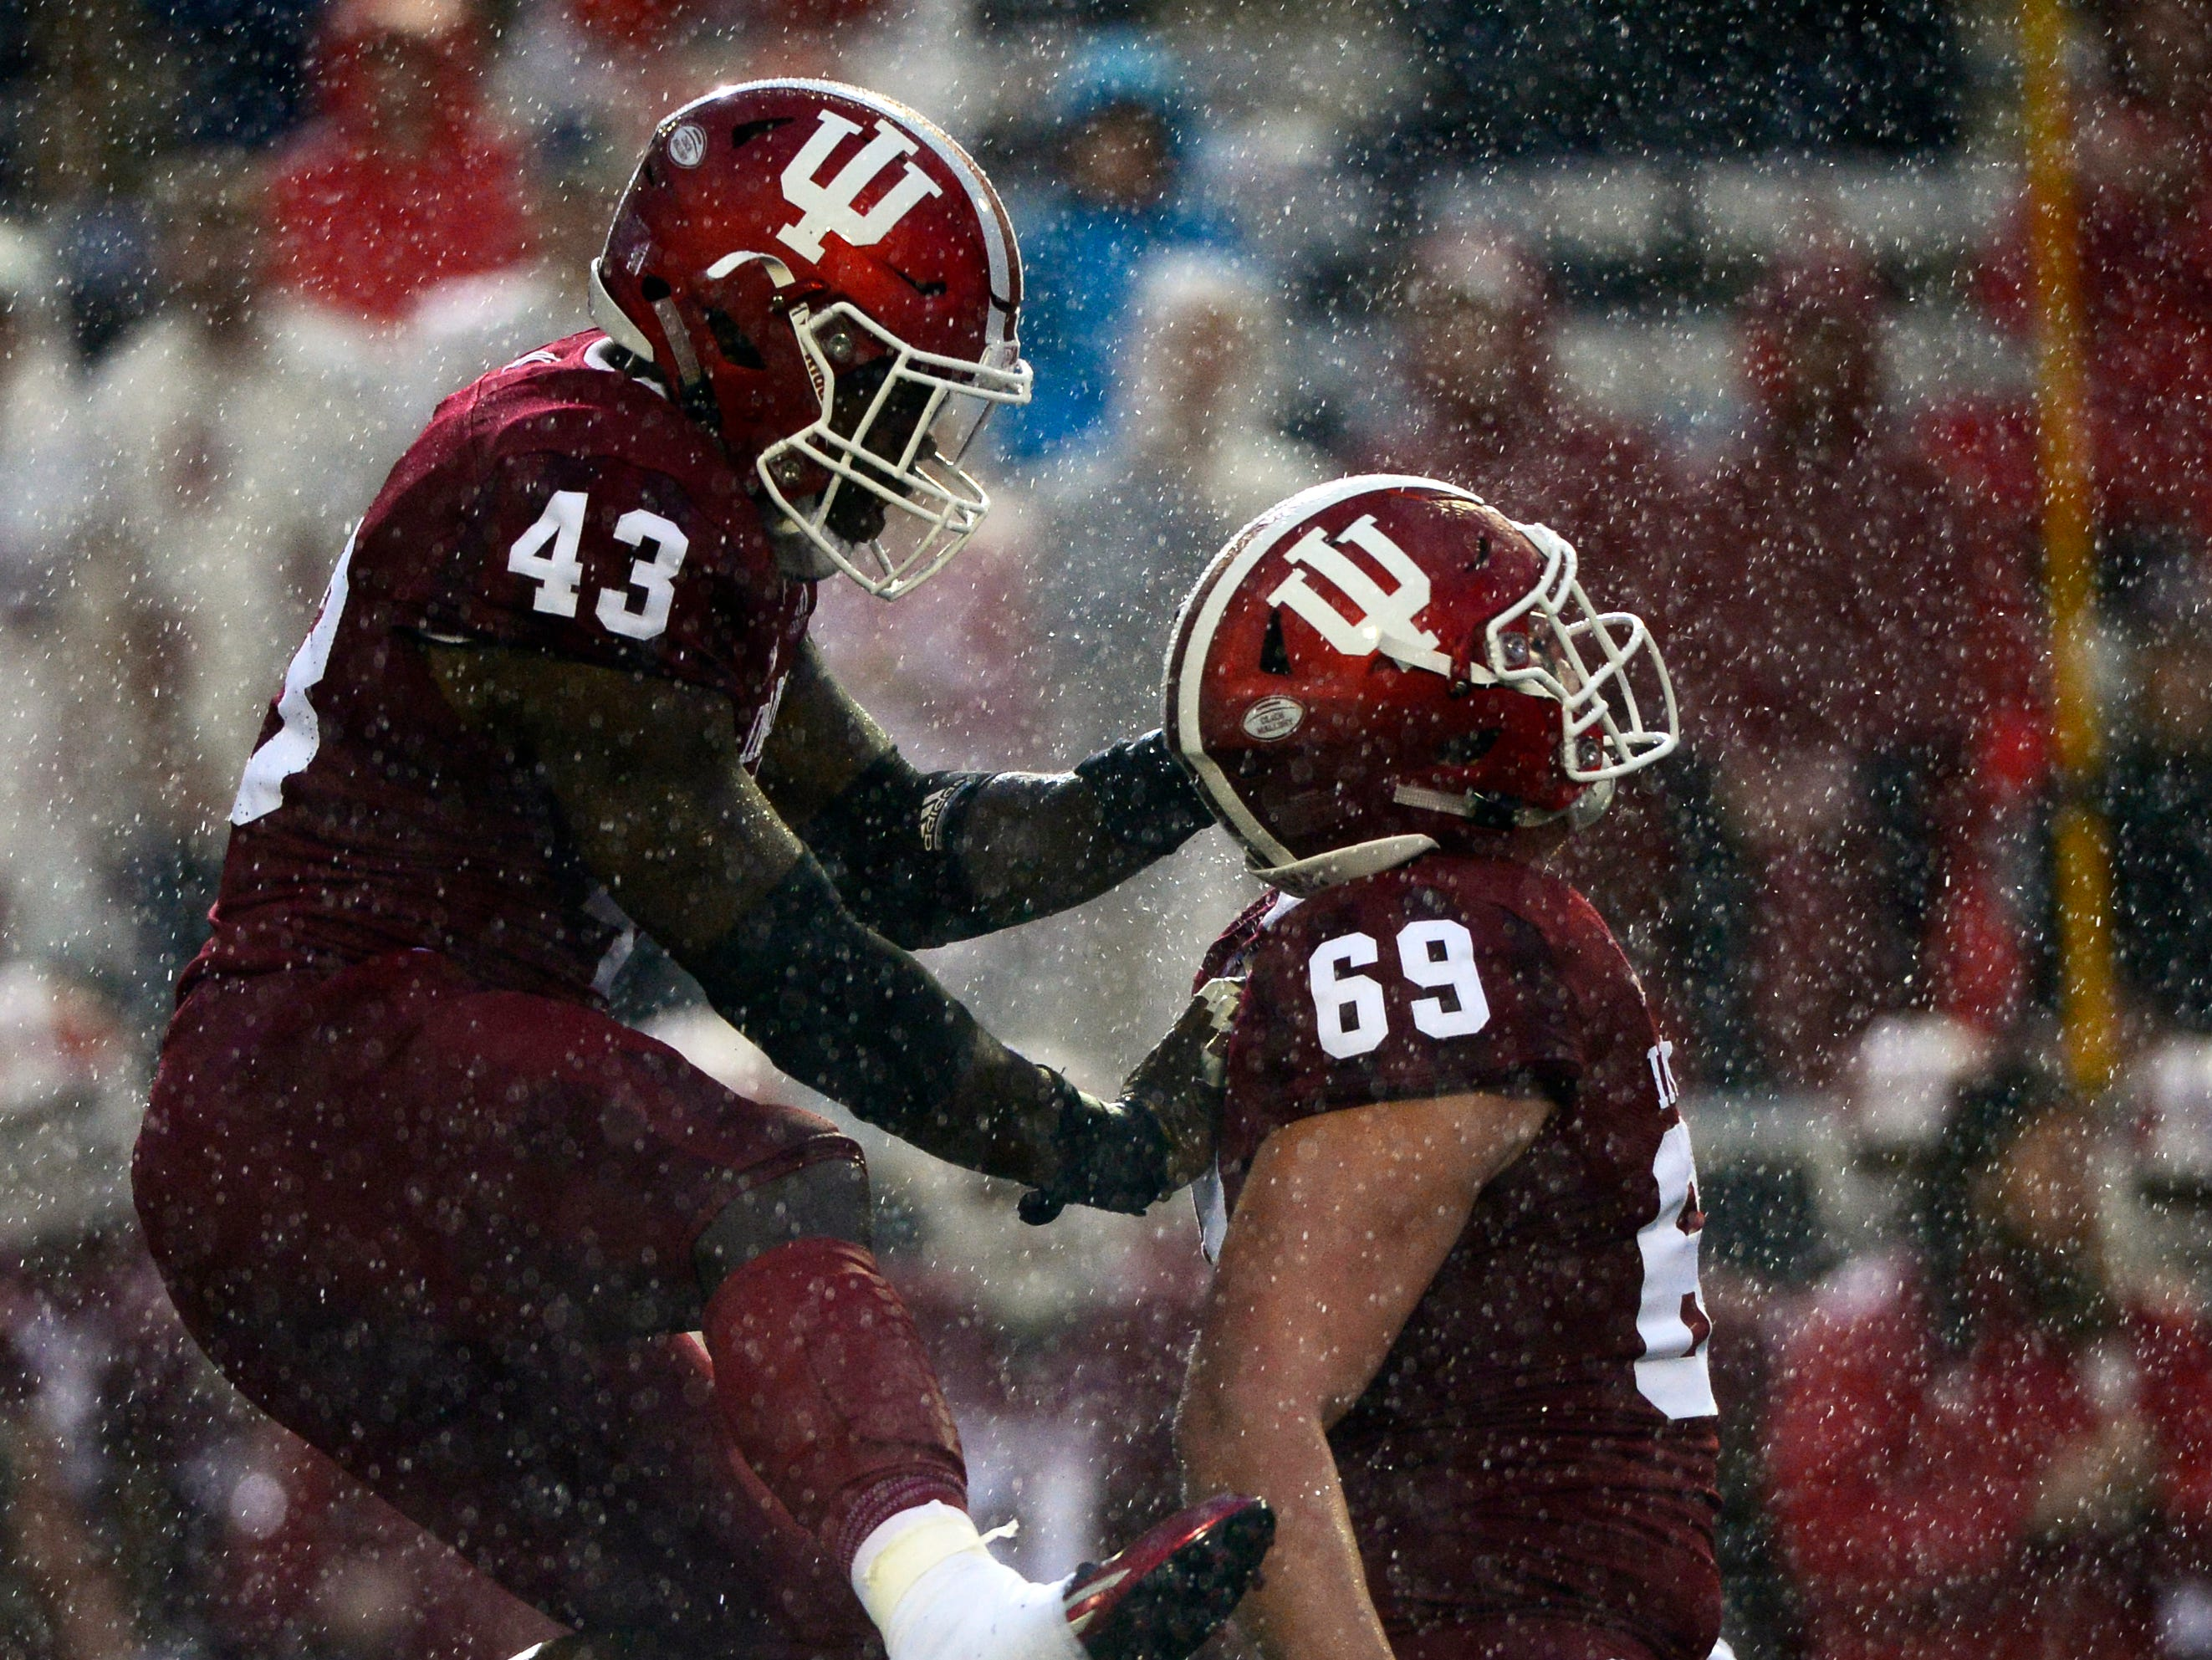 Indiana Hoosiers linebacker Dameon Willis Jr. (43) celebrates with defensive lineman Gavin Everett (69) after Everett made a tackle during the game against Virginia at Memorial Stadium in Bloomington, Ind., on Saturday, Sept. 8, 2018.